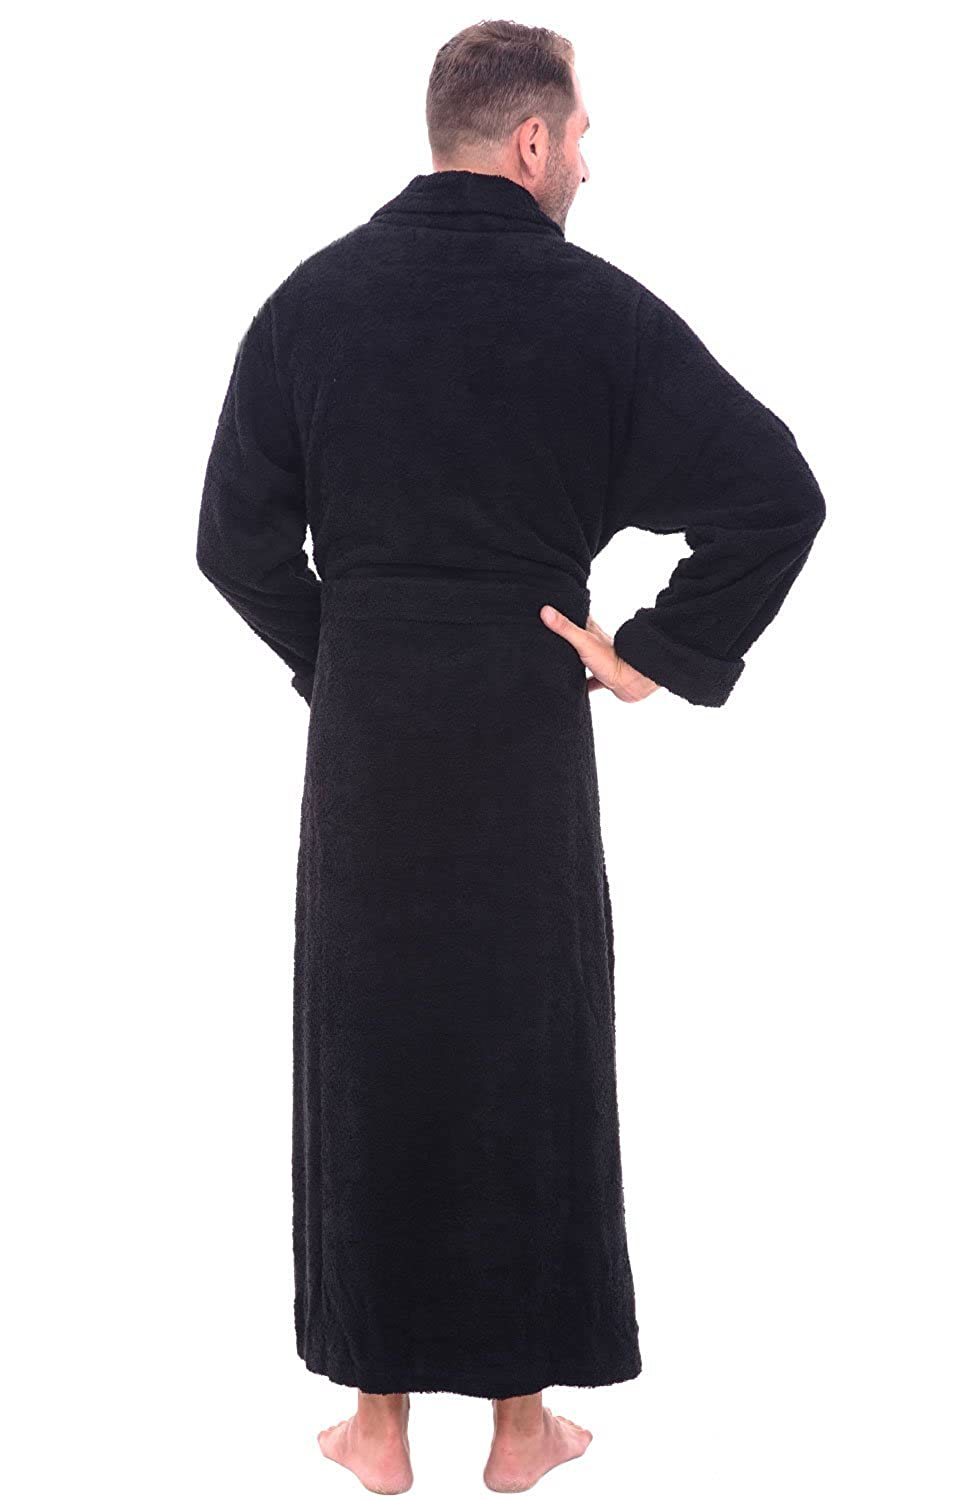 Alexander Del Rossa Mens Turkish Terry Cloth Robe Long Cotton Bathrobe At Amazon Clothing Store